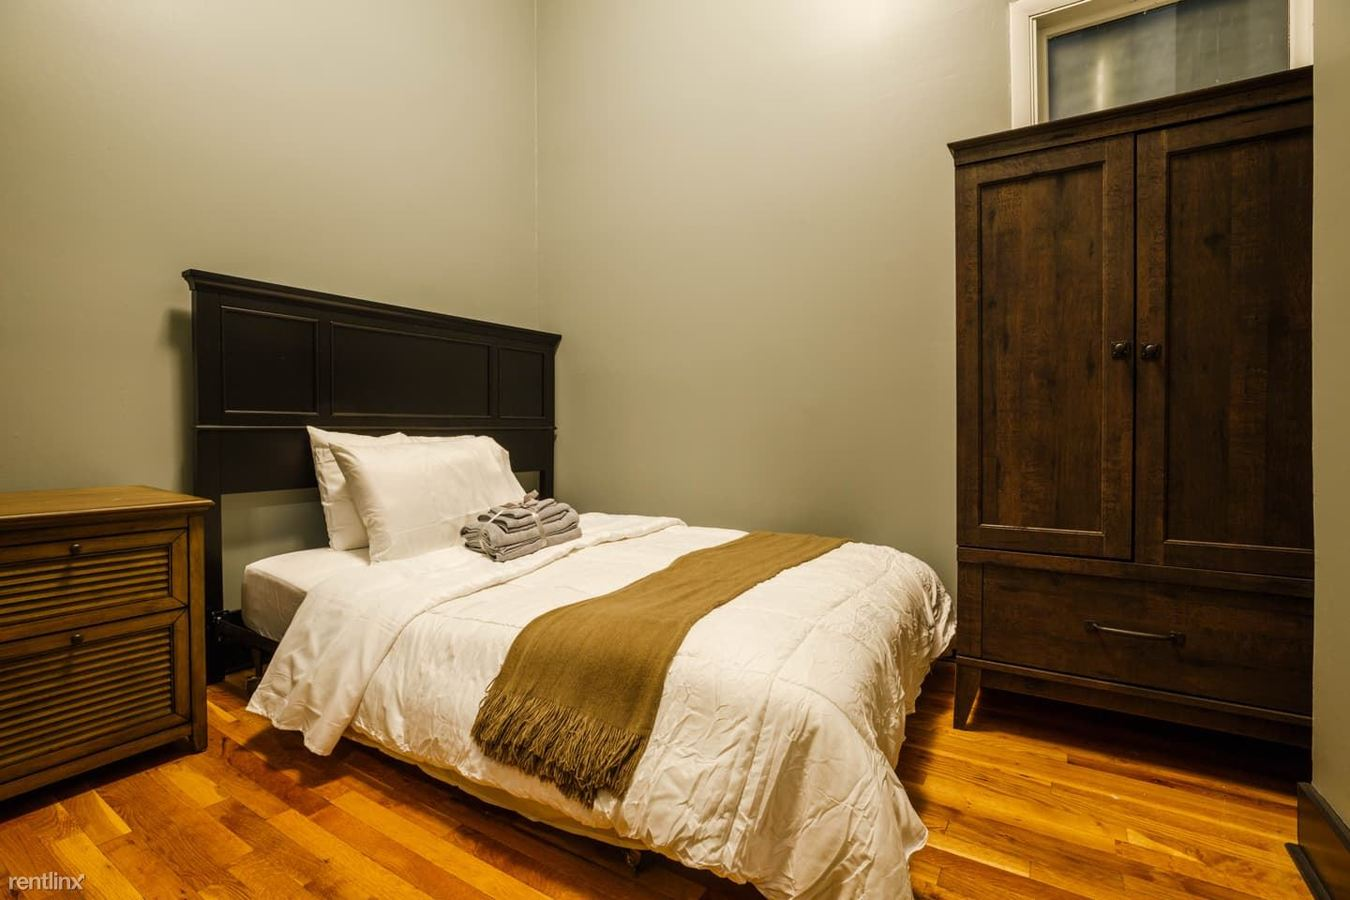 Studio 3 Bathrooms Apartment for rent at 305 West 29th Street, New York City, Ny, 10001 in New York City, NY